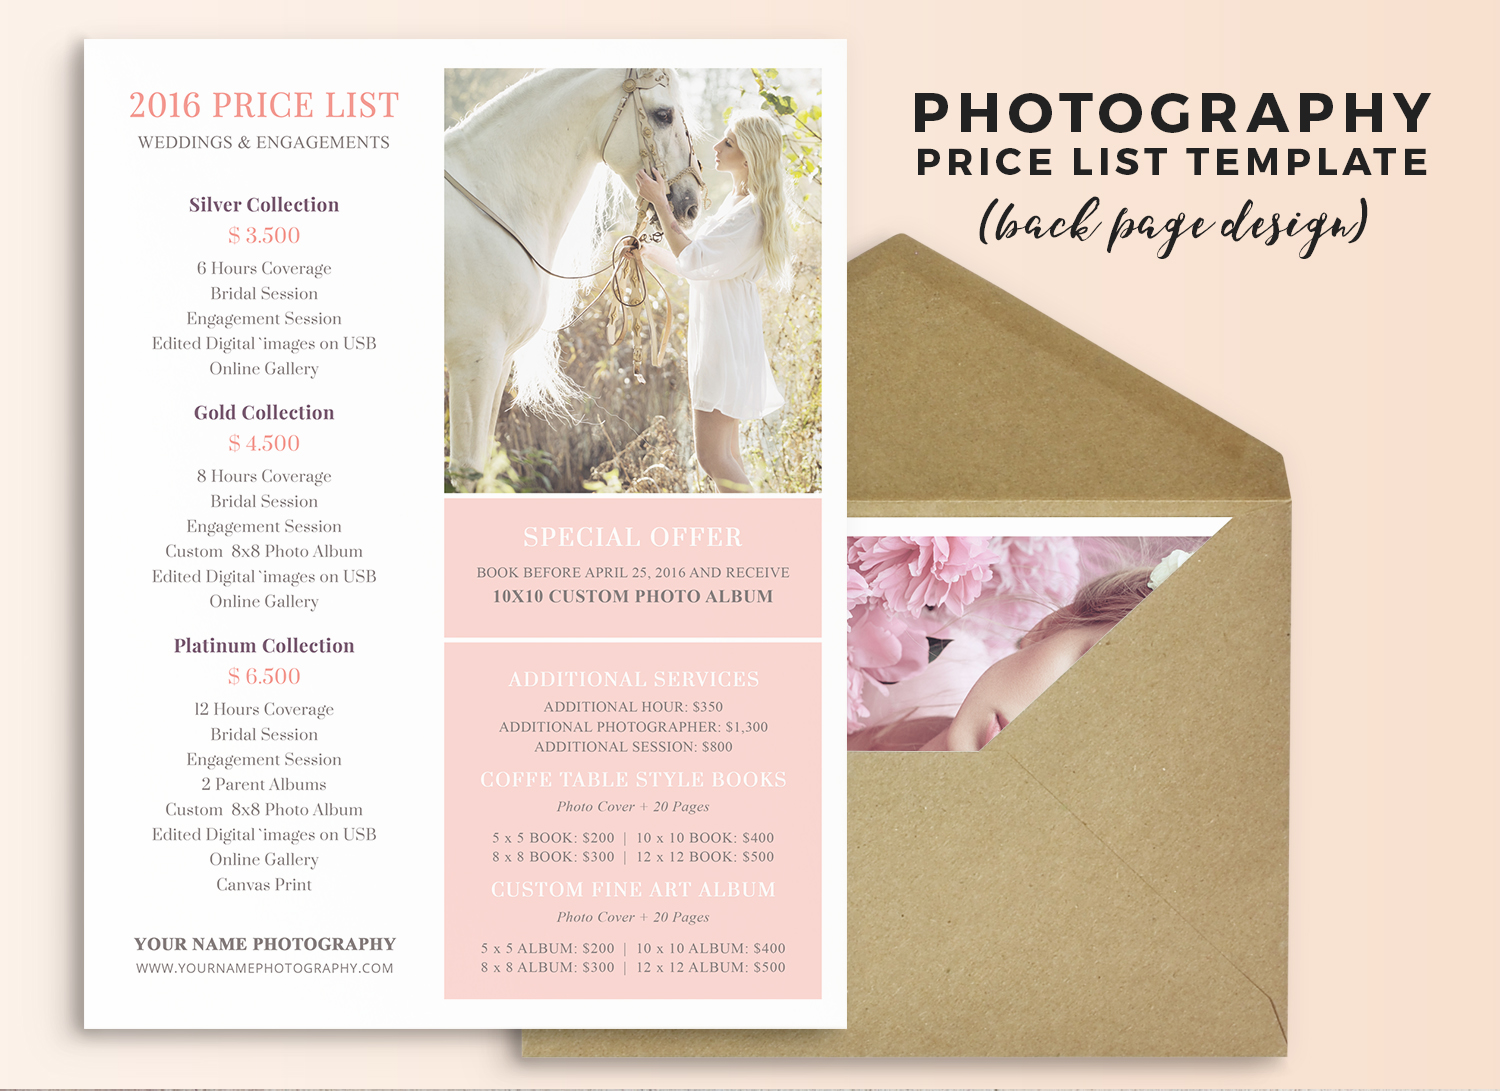 Wedding photography pricing guide template - Megan